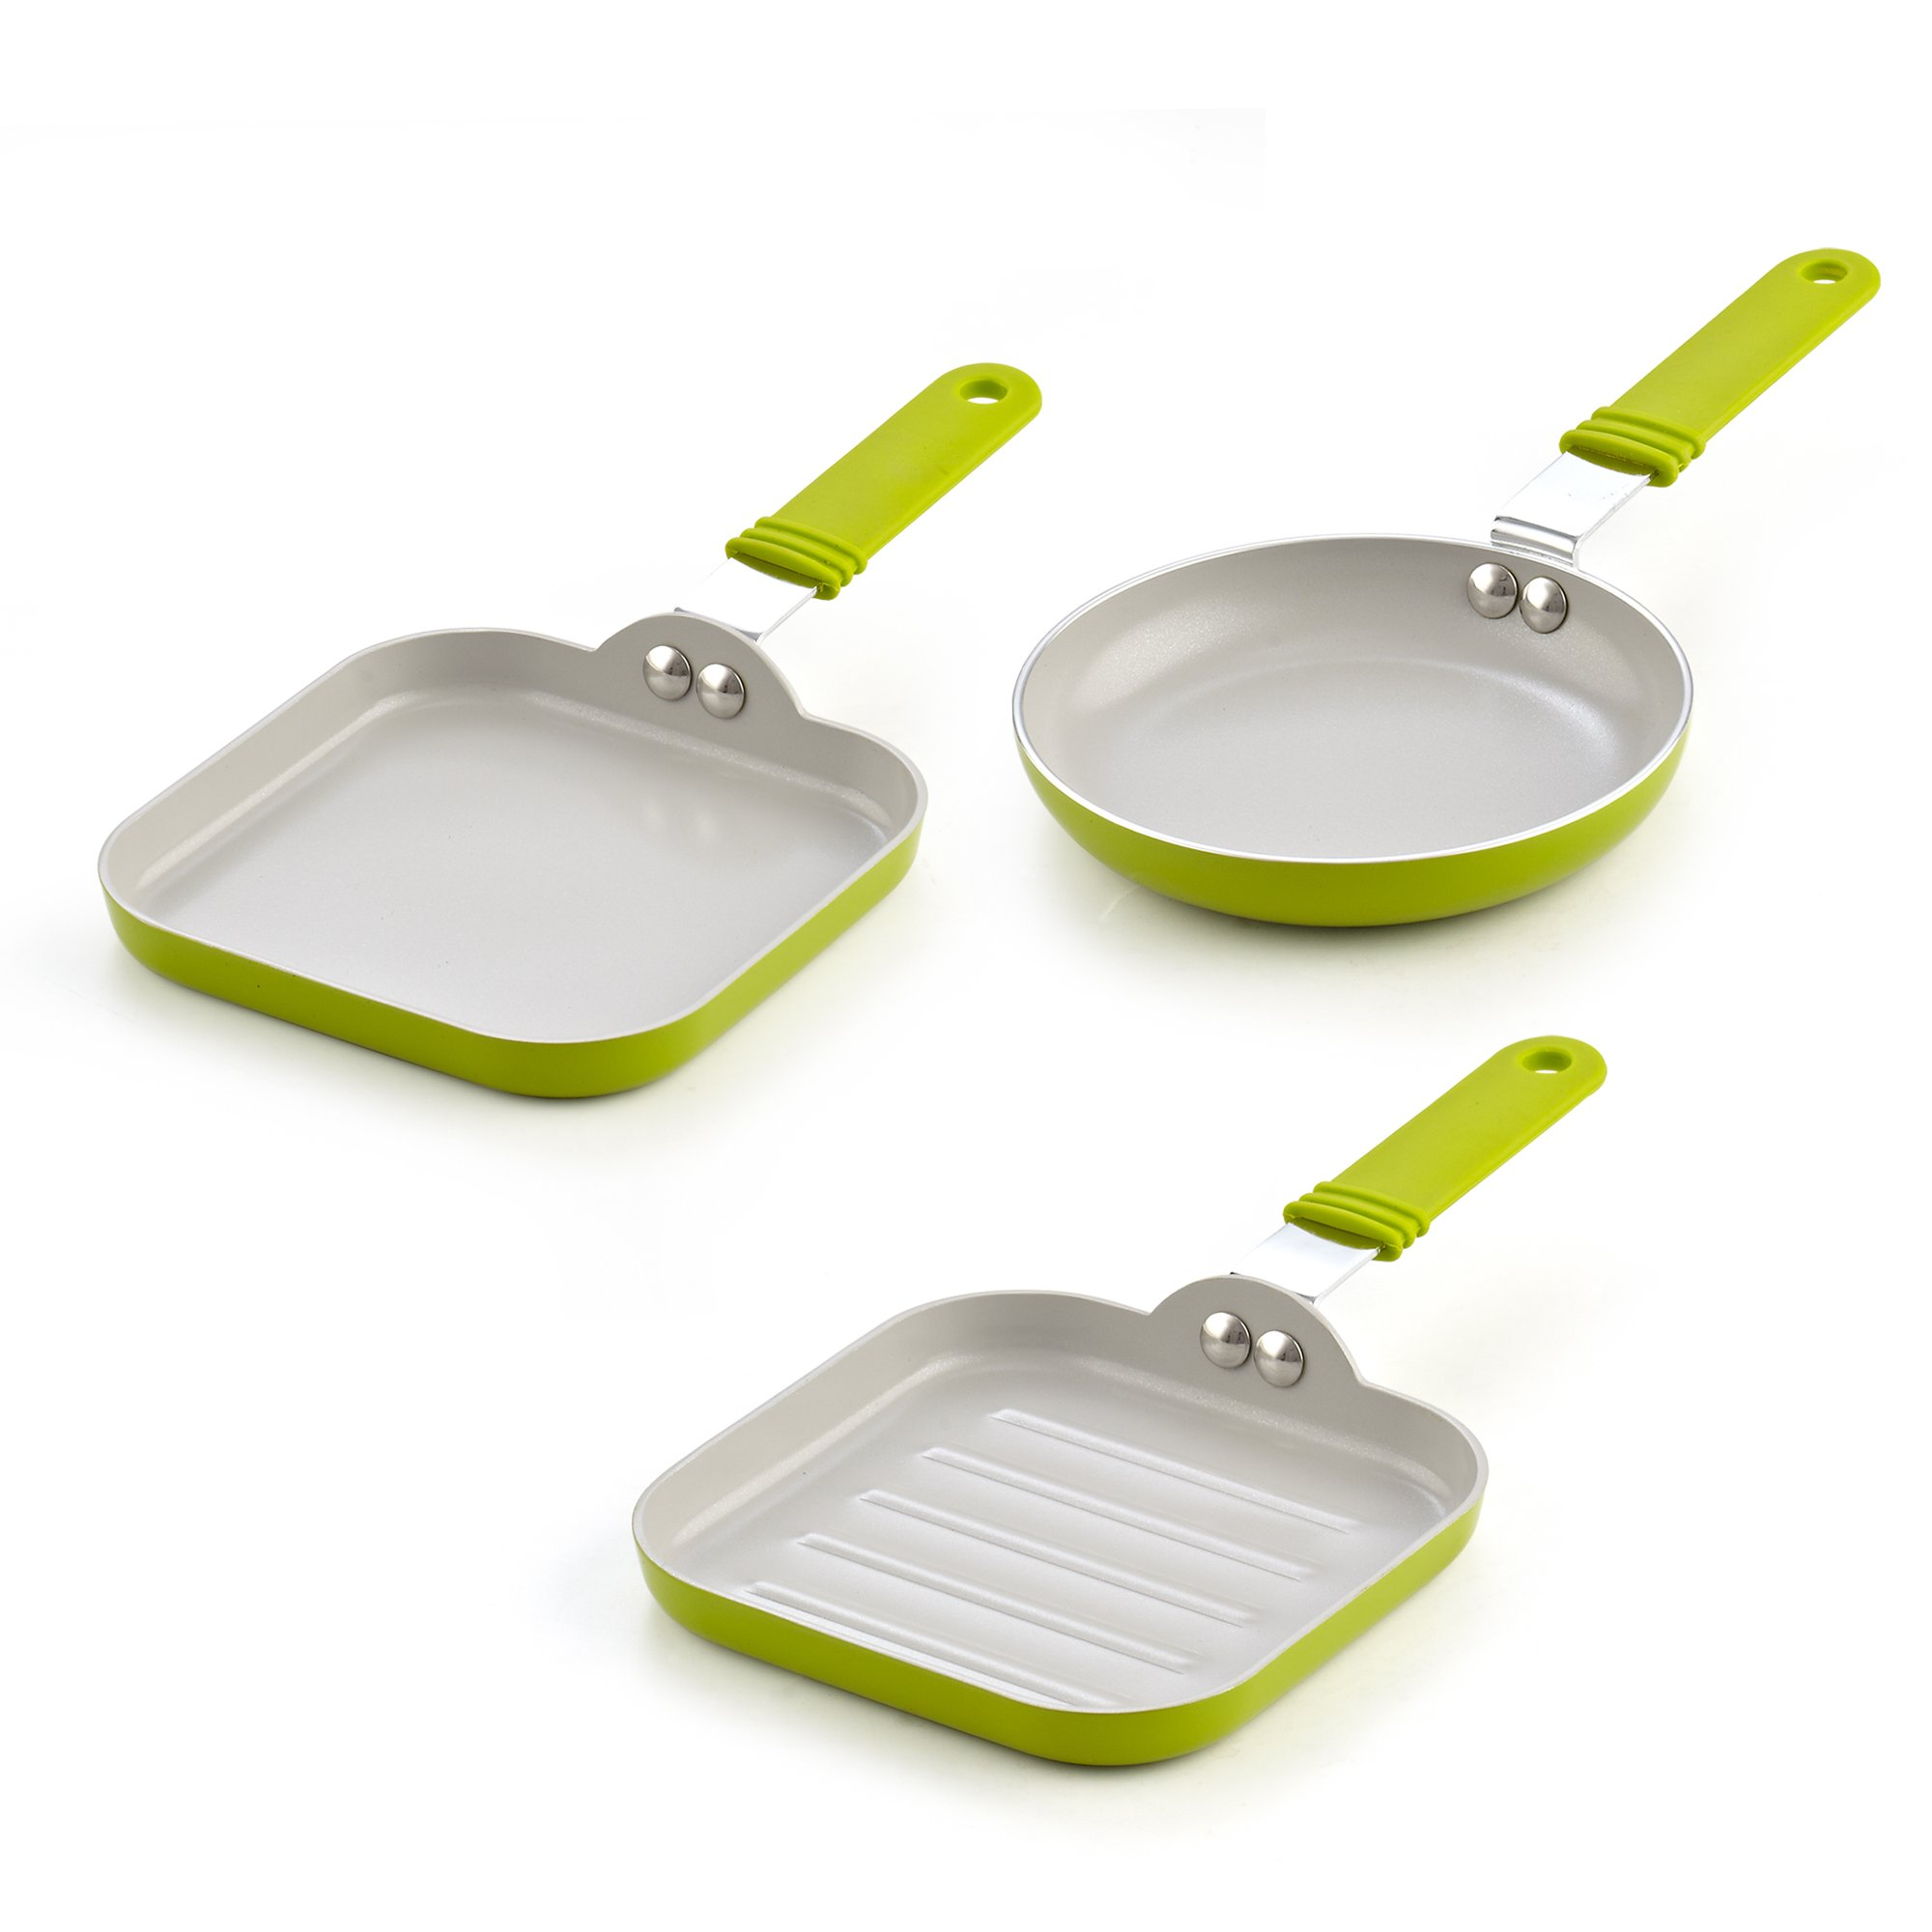 Cook N Home 02583 5.5-Inch Nonstick Ceramic Mini Fry, Griddle, Grill 3-Piece Pan Set, Green by Cook N Home